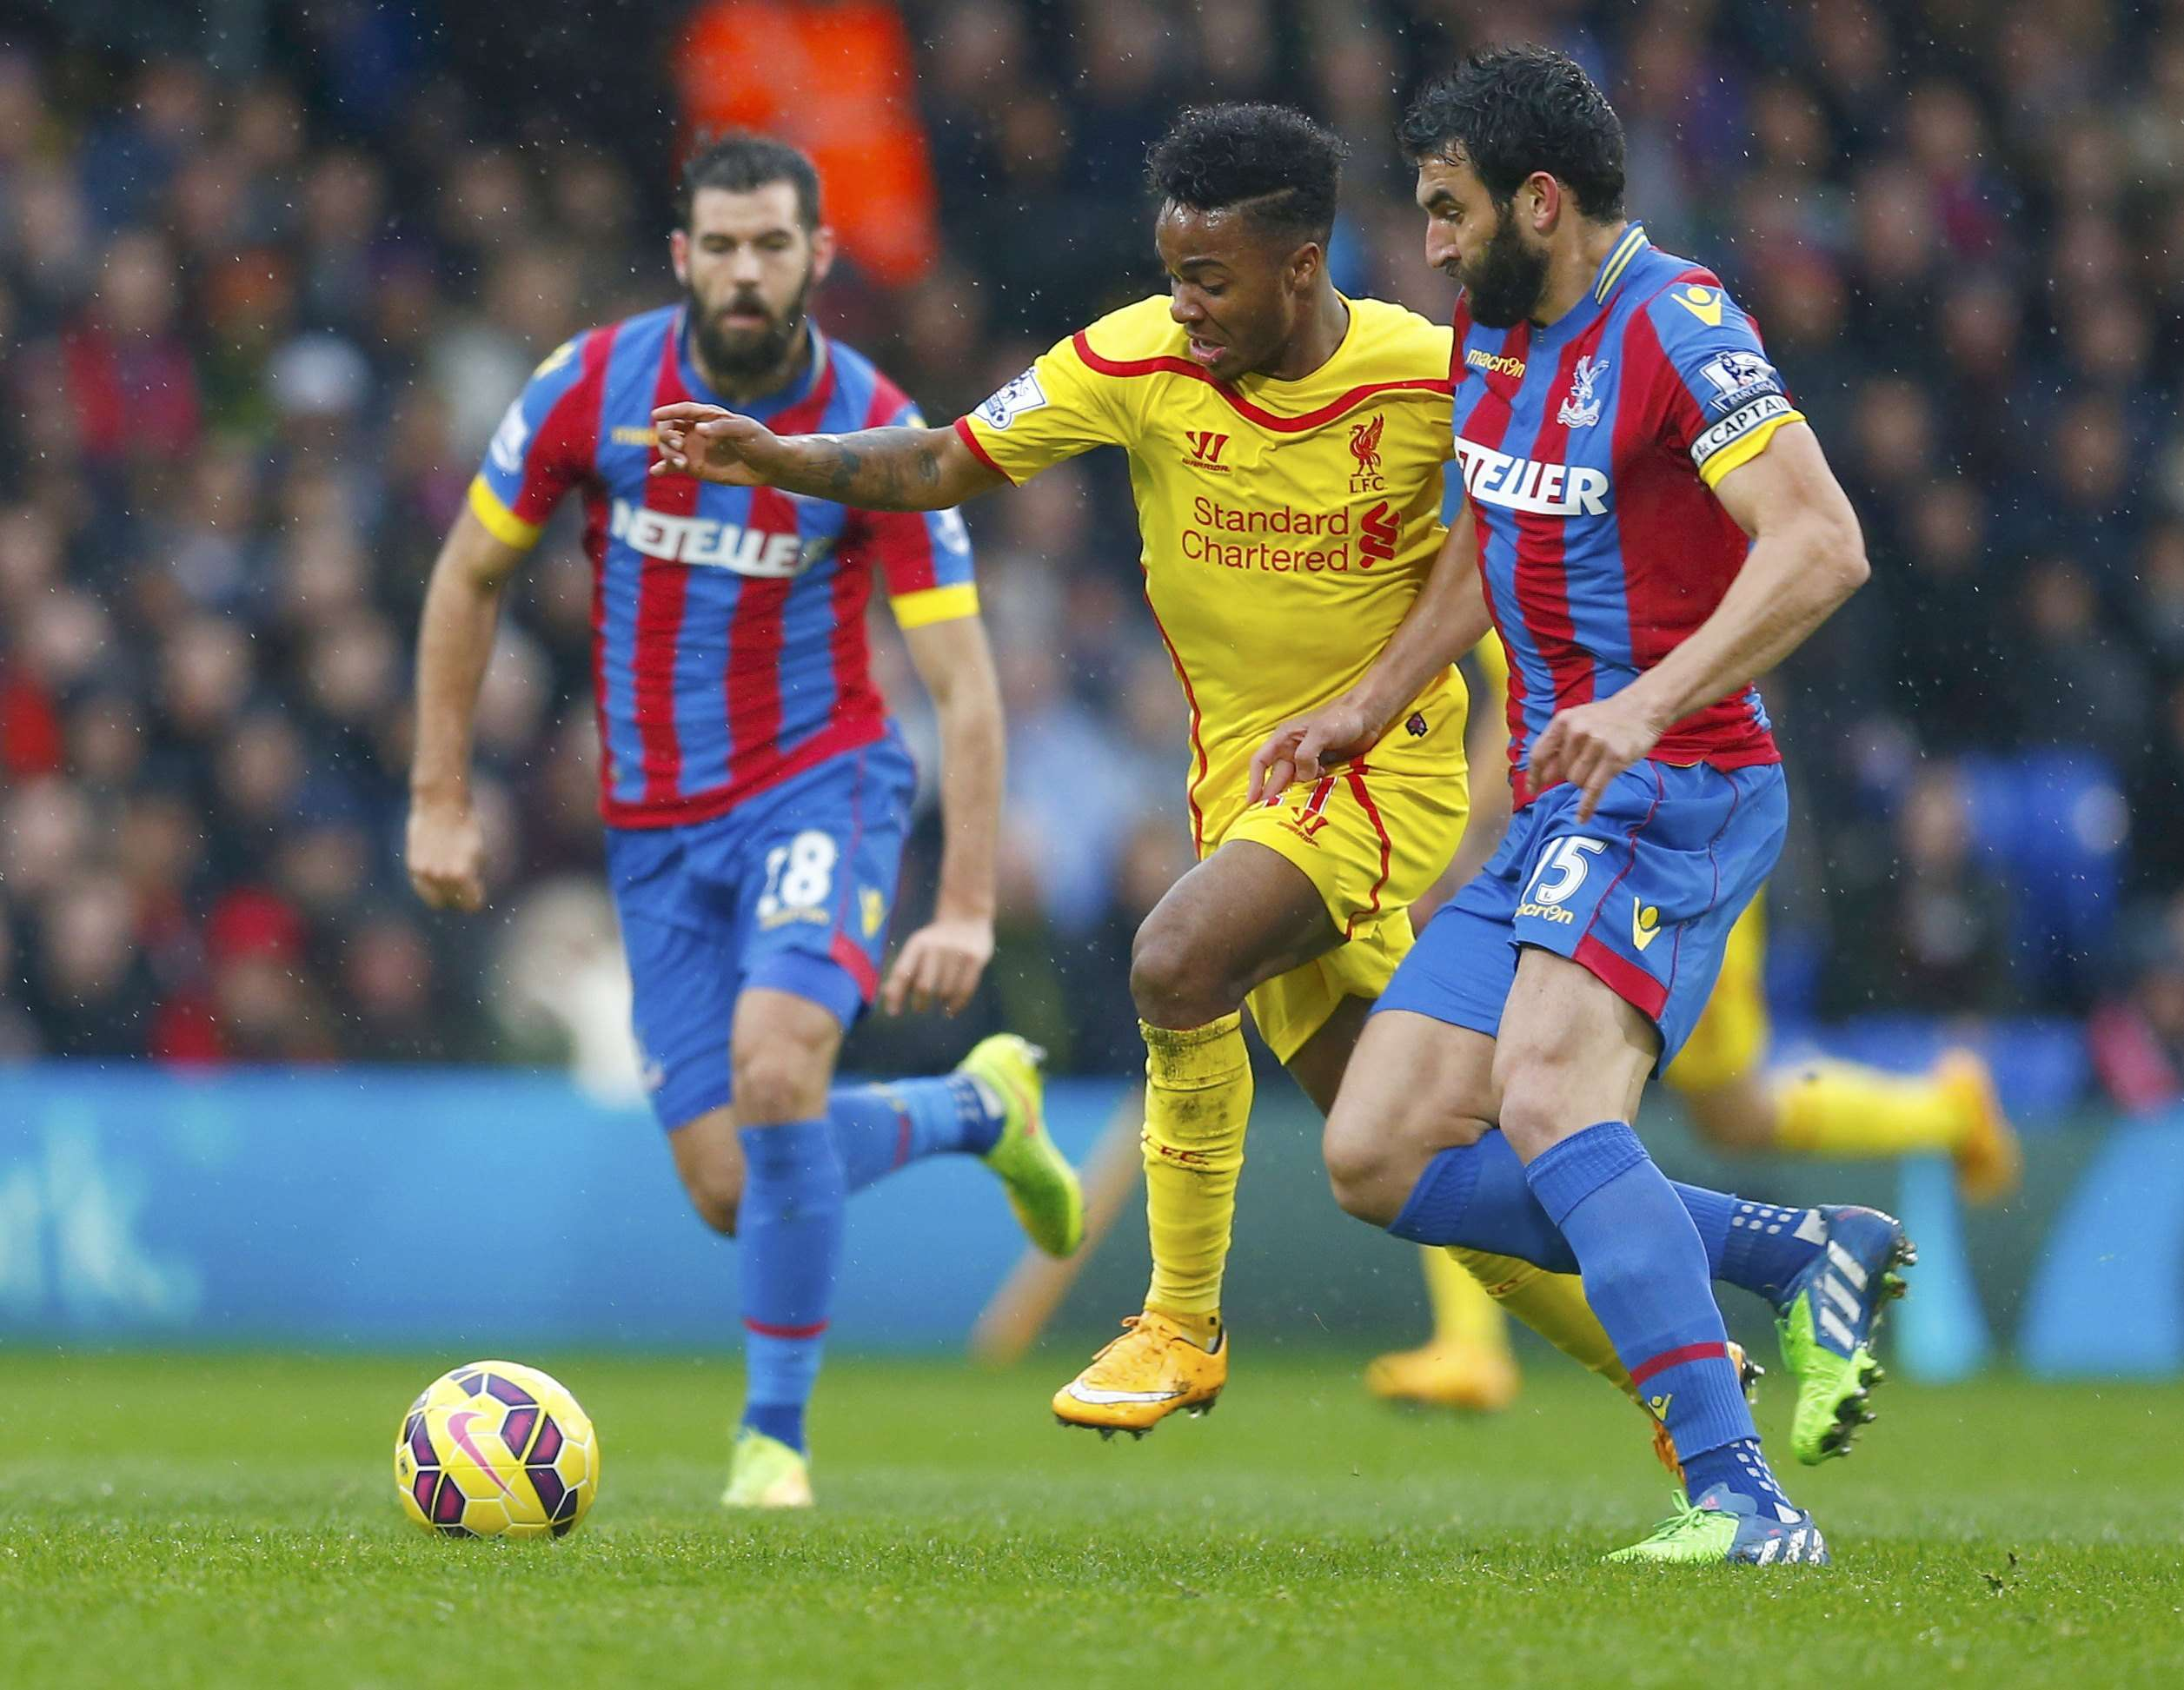 Liverpool's Raheem Sterling (C) is challenged by Crystal Palace's Mile Jedinak (R) during their English Premier League soccer match at Selhurst Park in London November 23, 2014. REUTERS/Eddie Keogh (BRITAIN - Tags: SOCCER SPORT) FOR EDITORIAL USE ONLY. NOT FOR SALE FOR MARKETING OR ADVERTISING CAMPAIGNS. EDITORIAL USE ONLY. NO USE WITH UNAUTHORIZED AUDIO, VIDEO, DATA, FIXTURE LISTS, CLUB/LEAGUE LOGOS OR 'LIVE' SERVICES. ONLINE IN-MATCH USE LIMITED TO 45 IMAGES, NO VIDEO EMULATION. NO USE IN BETTING, GAMES OR SINGLE CLUB/LEAGUE/PLAYER PUBLICATIONS. Foto: EDDIE KEOGH/REUTERS